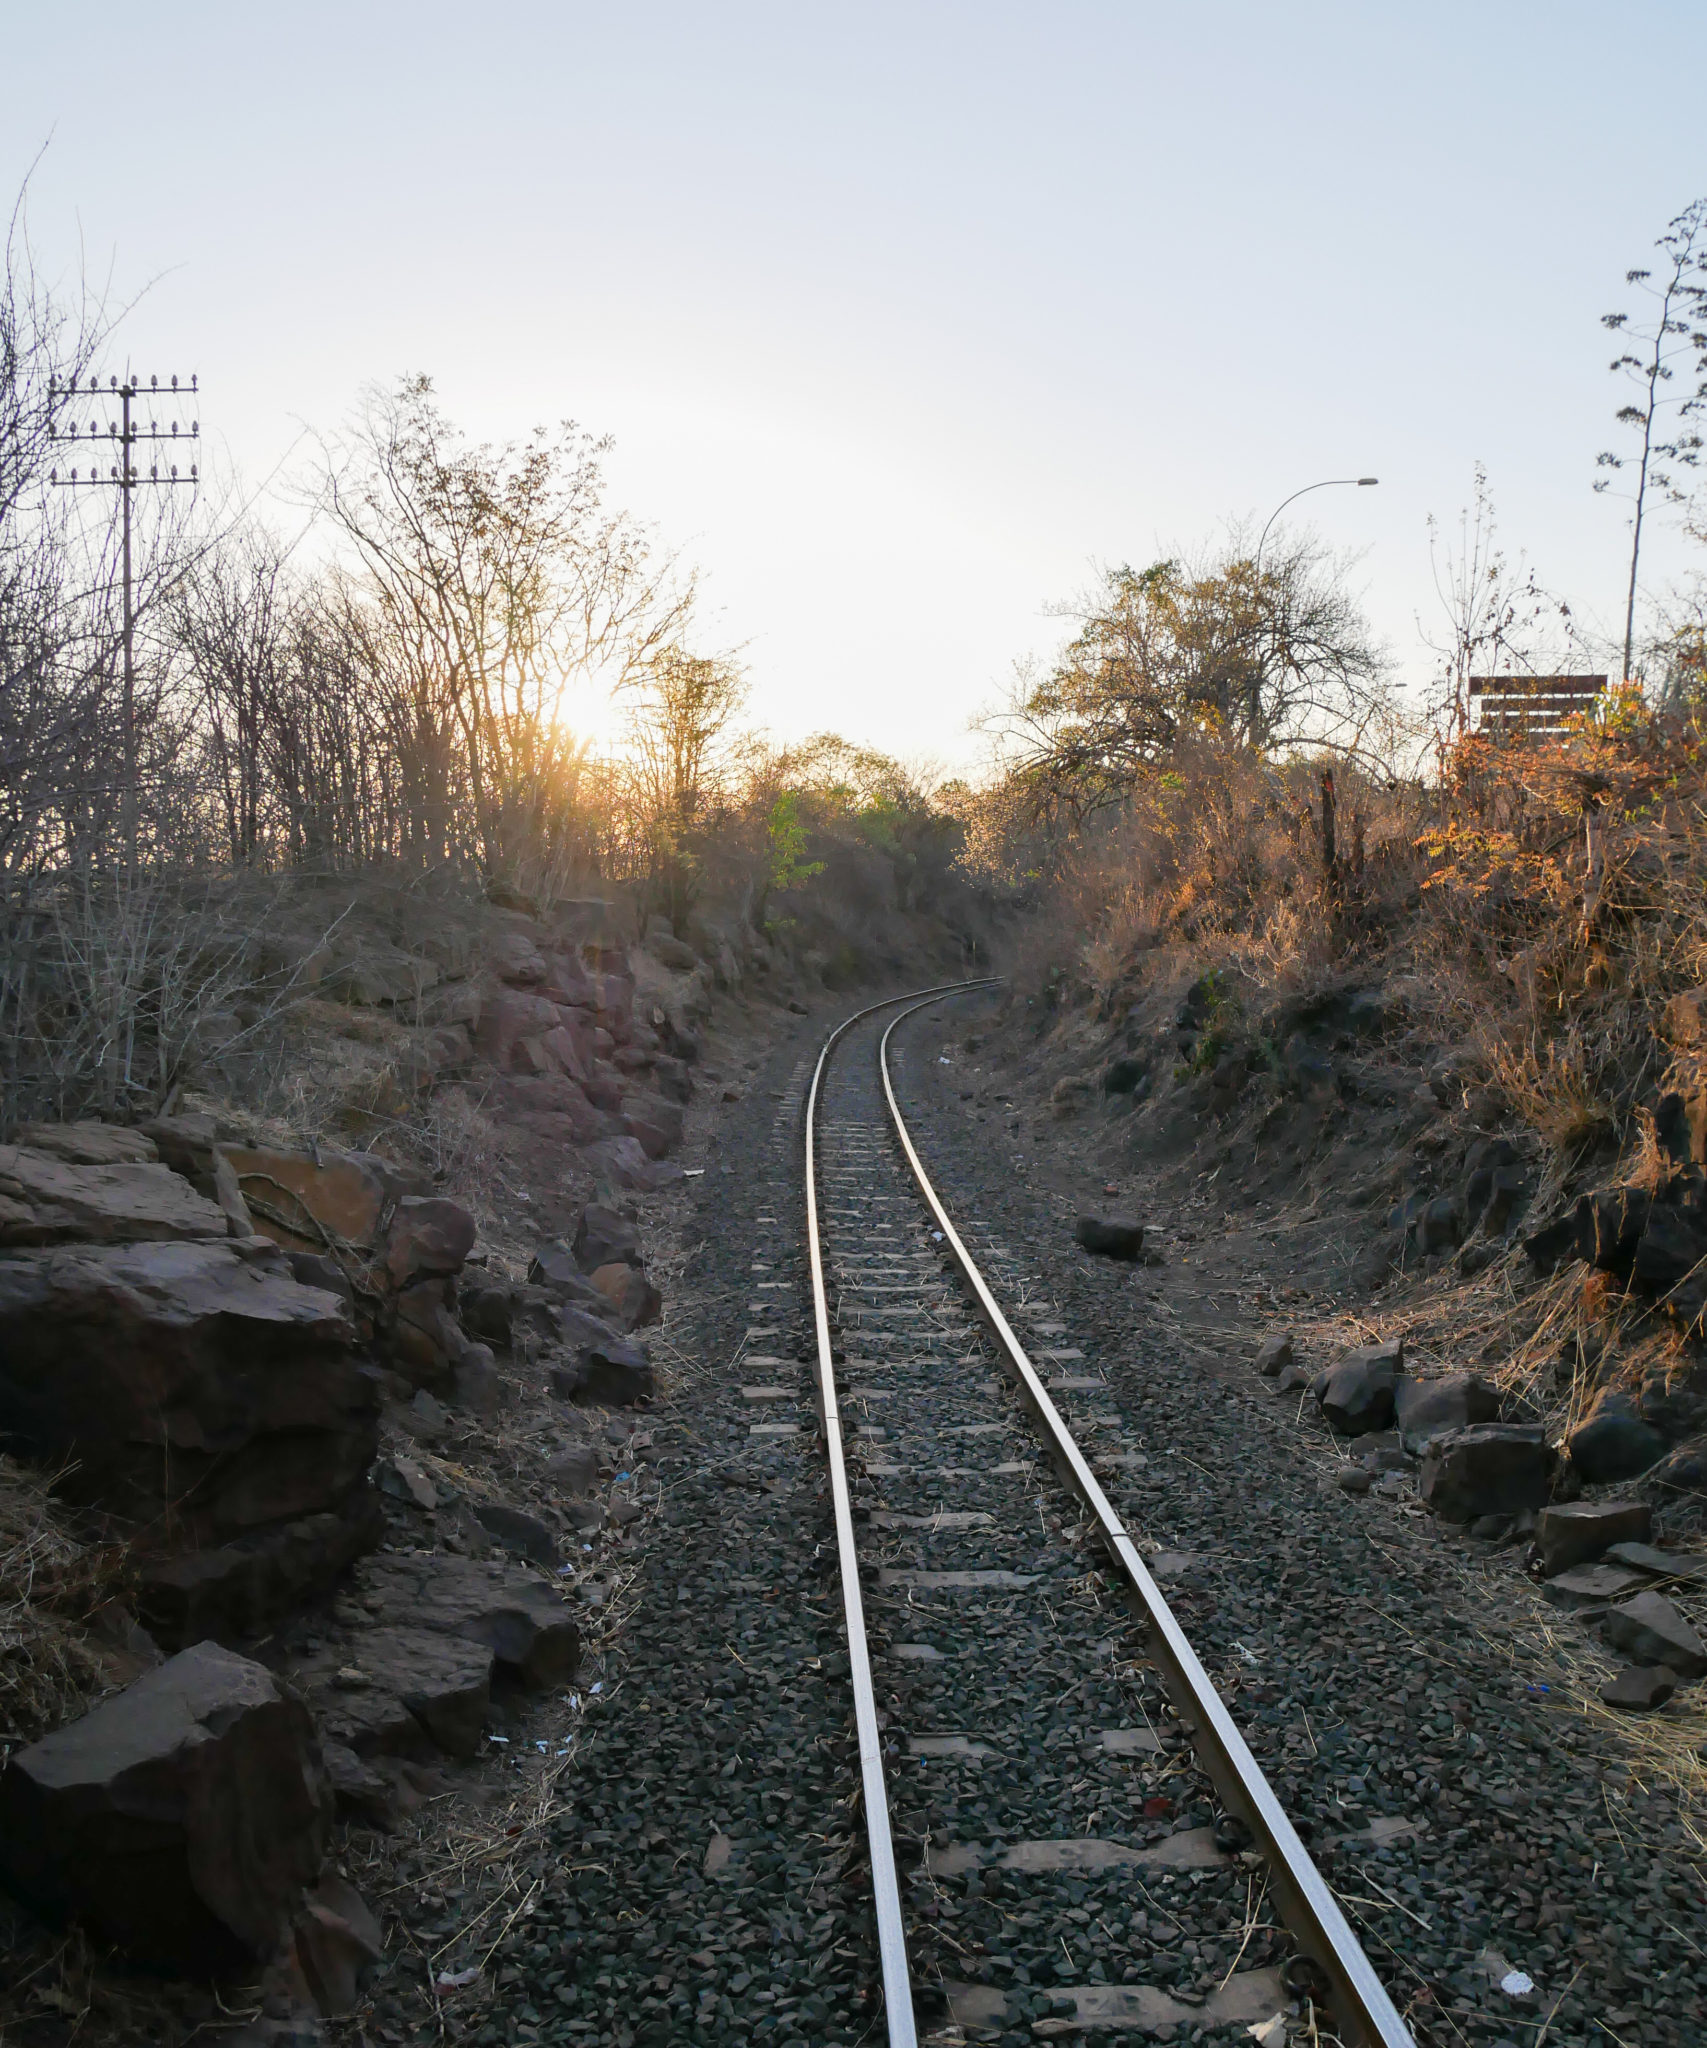 Train tracks viewed from the back of the Royal Livingstone Express train